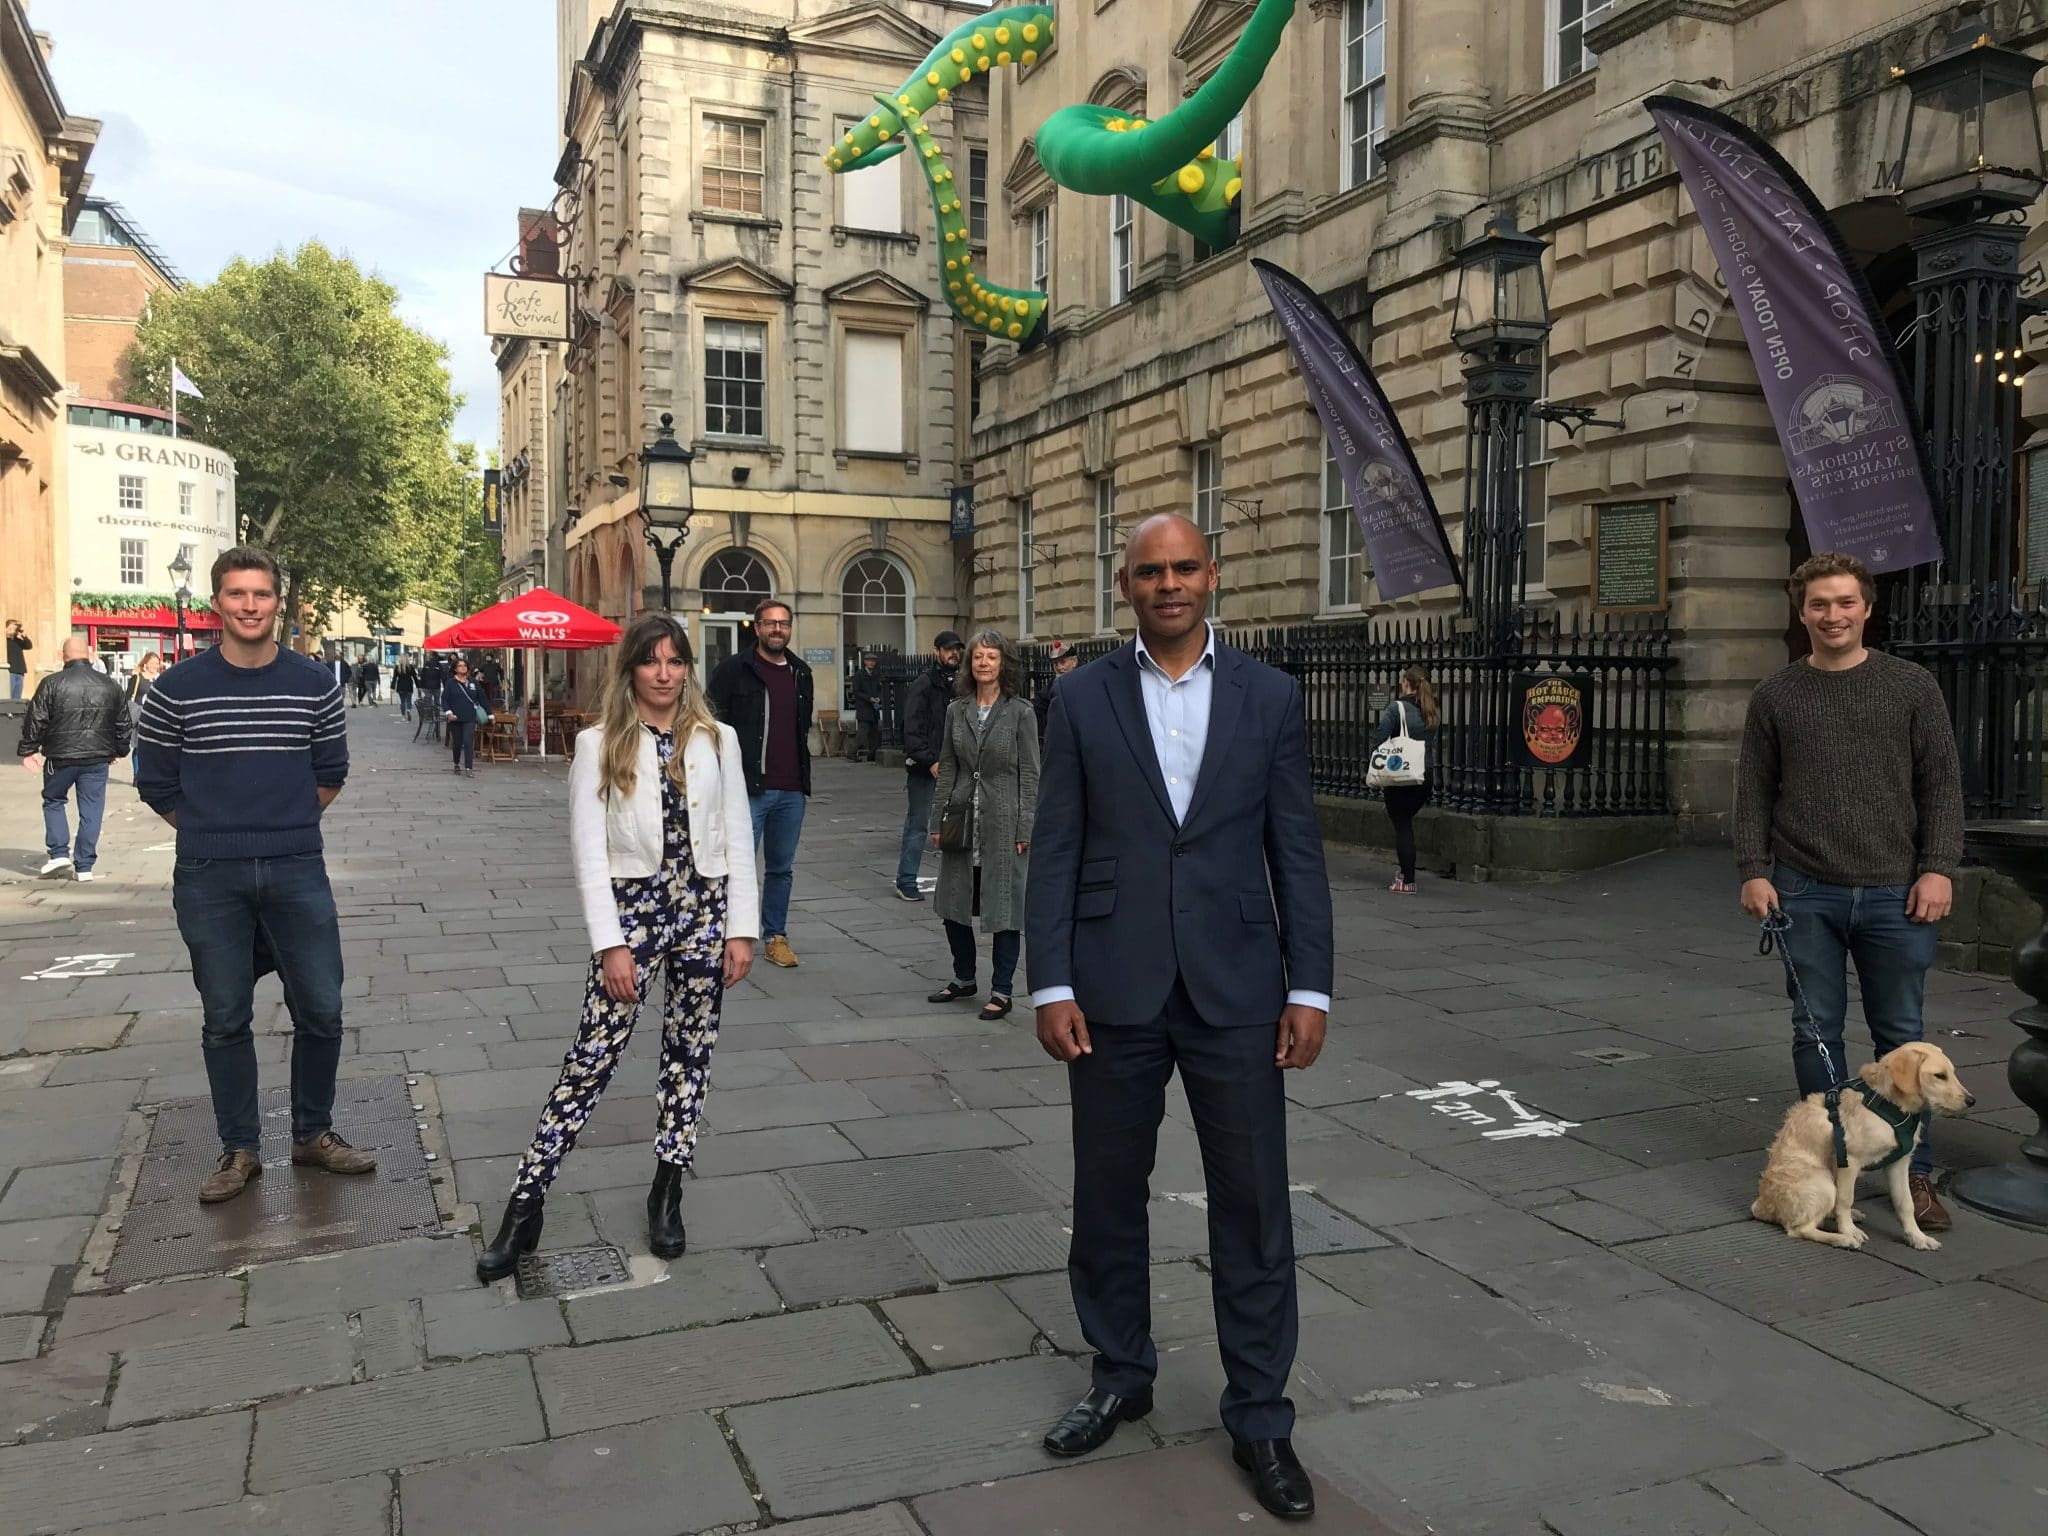 Mayor Marvin Rees unveils new Old City art installations & improvements